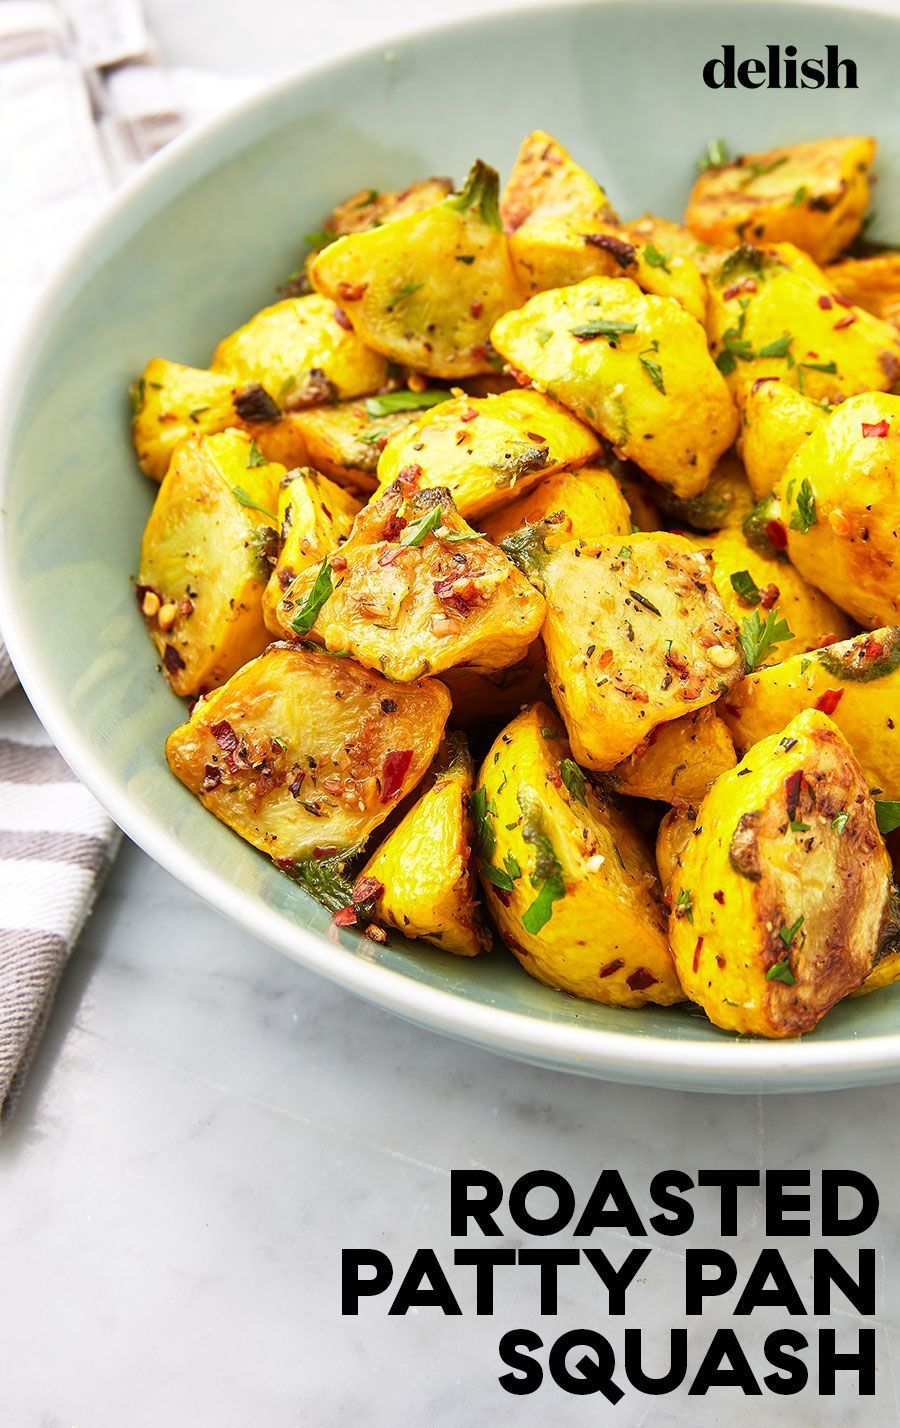 Patty Pan Squash Is The Cutest Veggie You Should Be Cooking